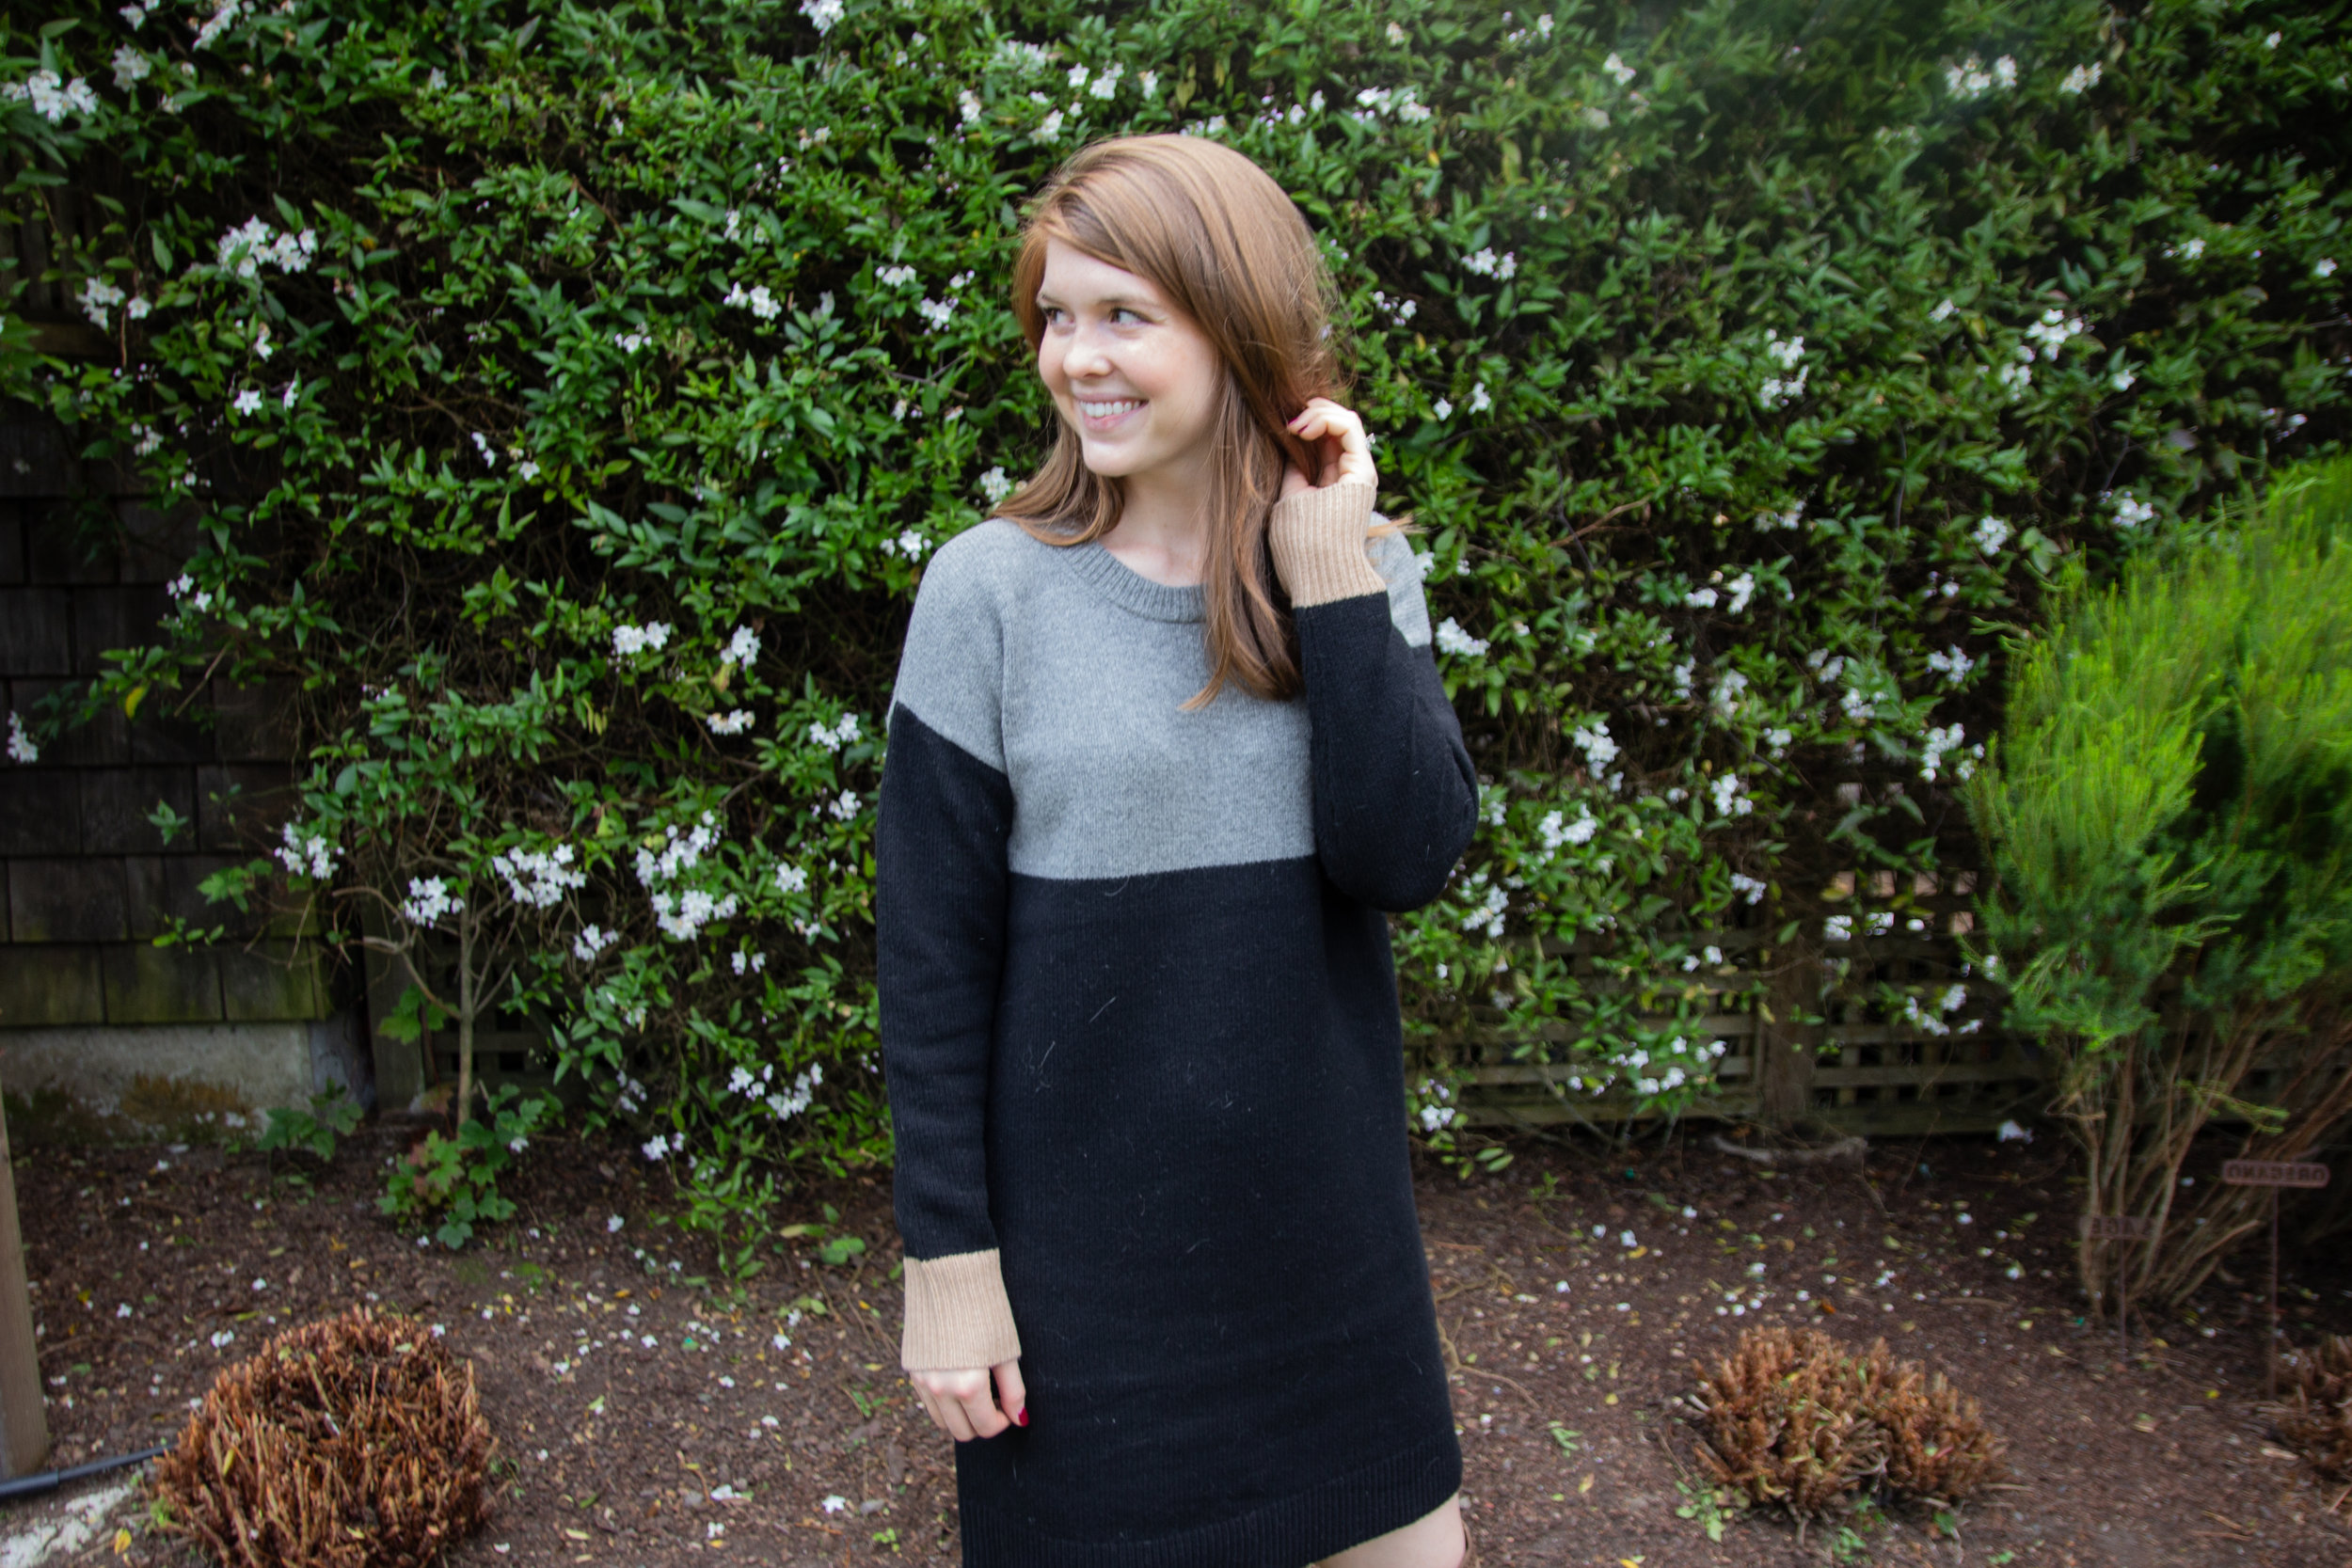 where to stay in mendocino, brewery gulch inn, bnb, romantic places to stay in mendo, central coast roadtrip, visit california, madewell colorblock sweater dress